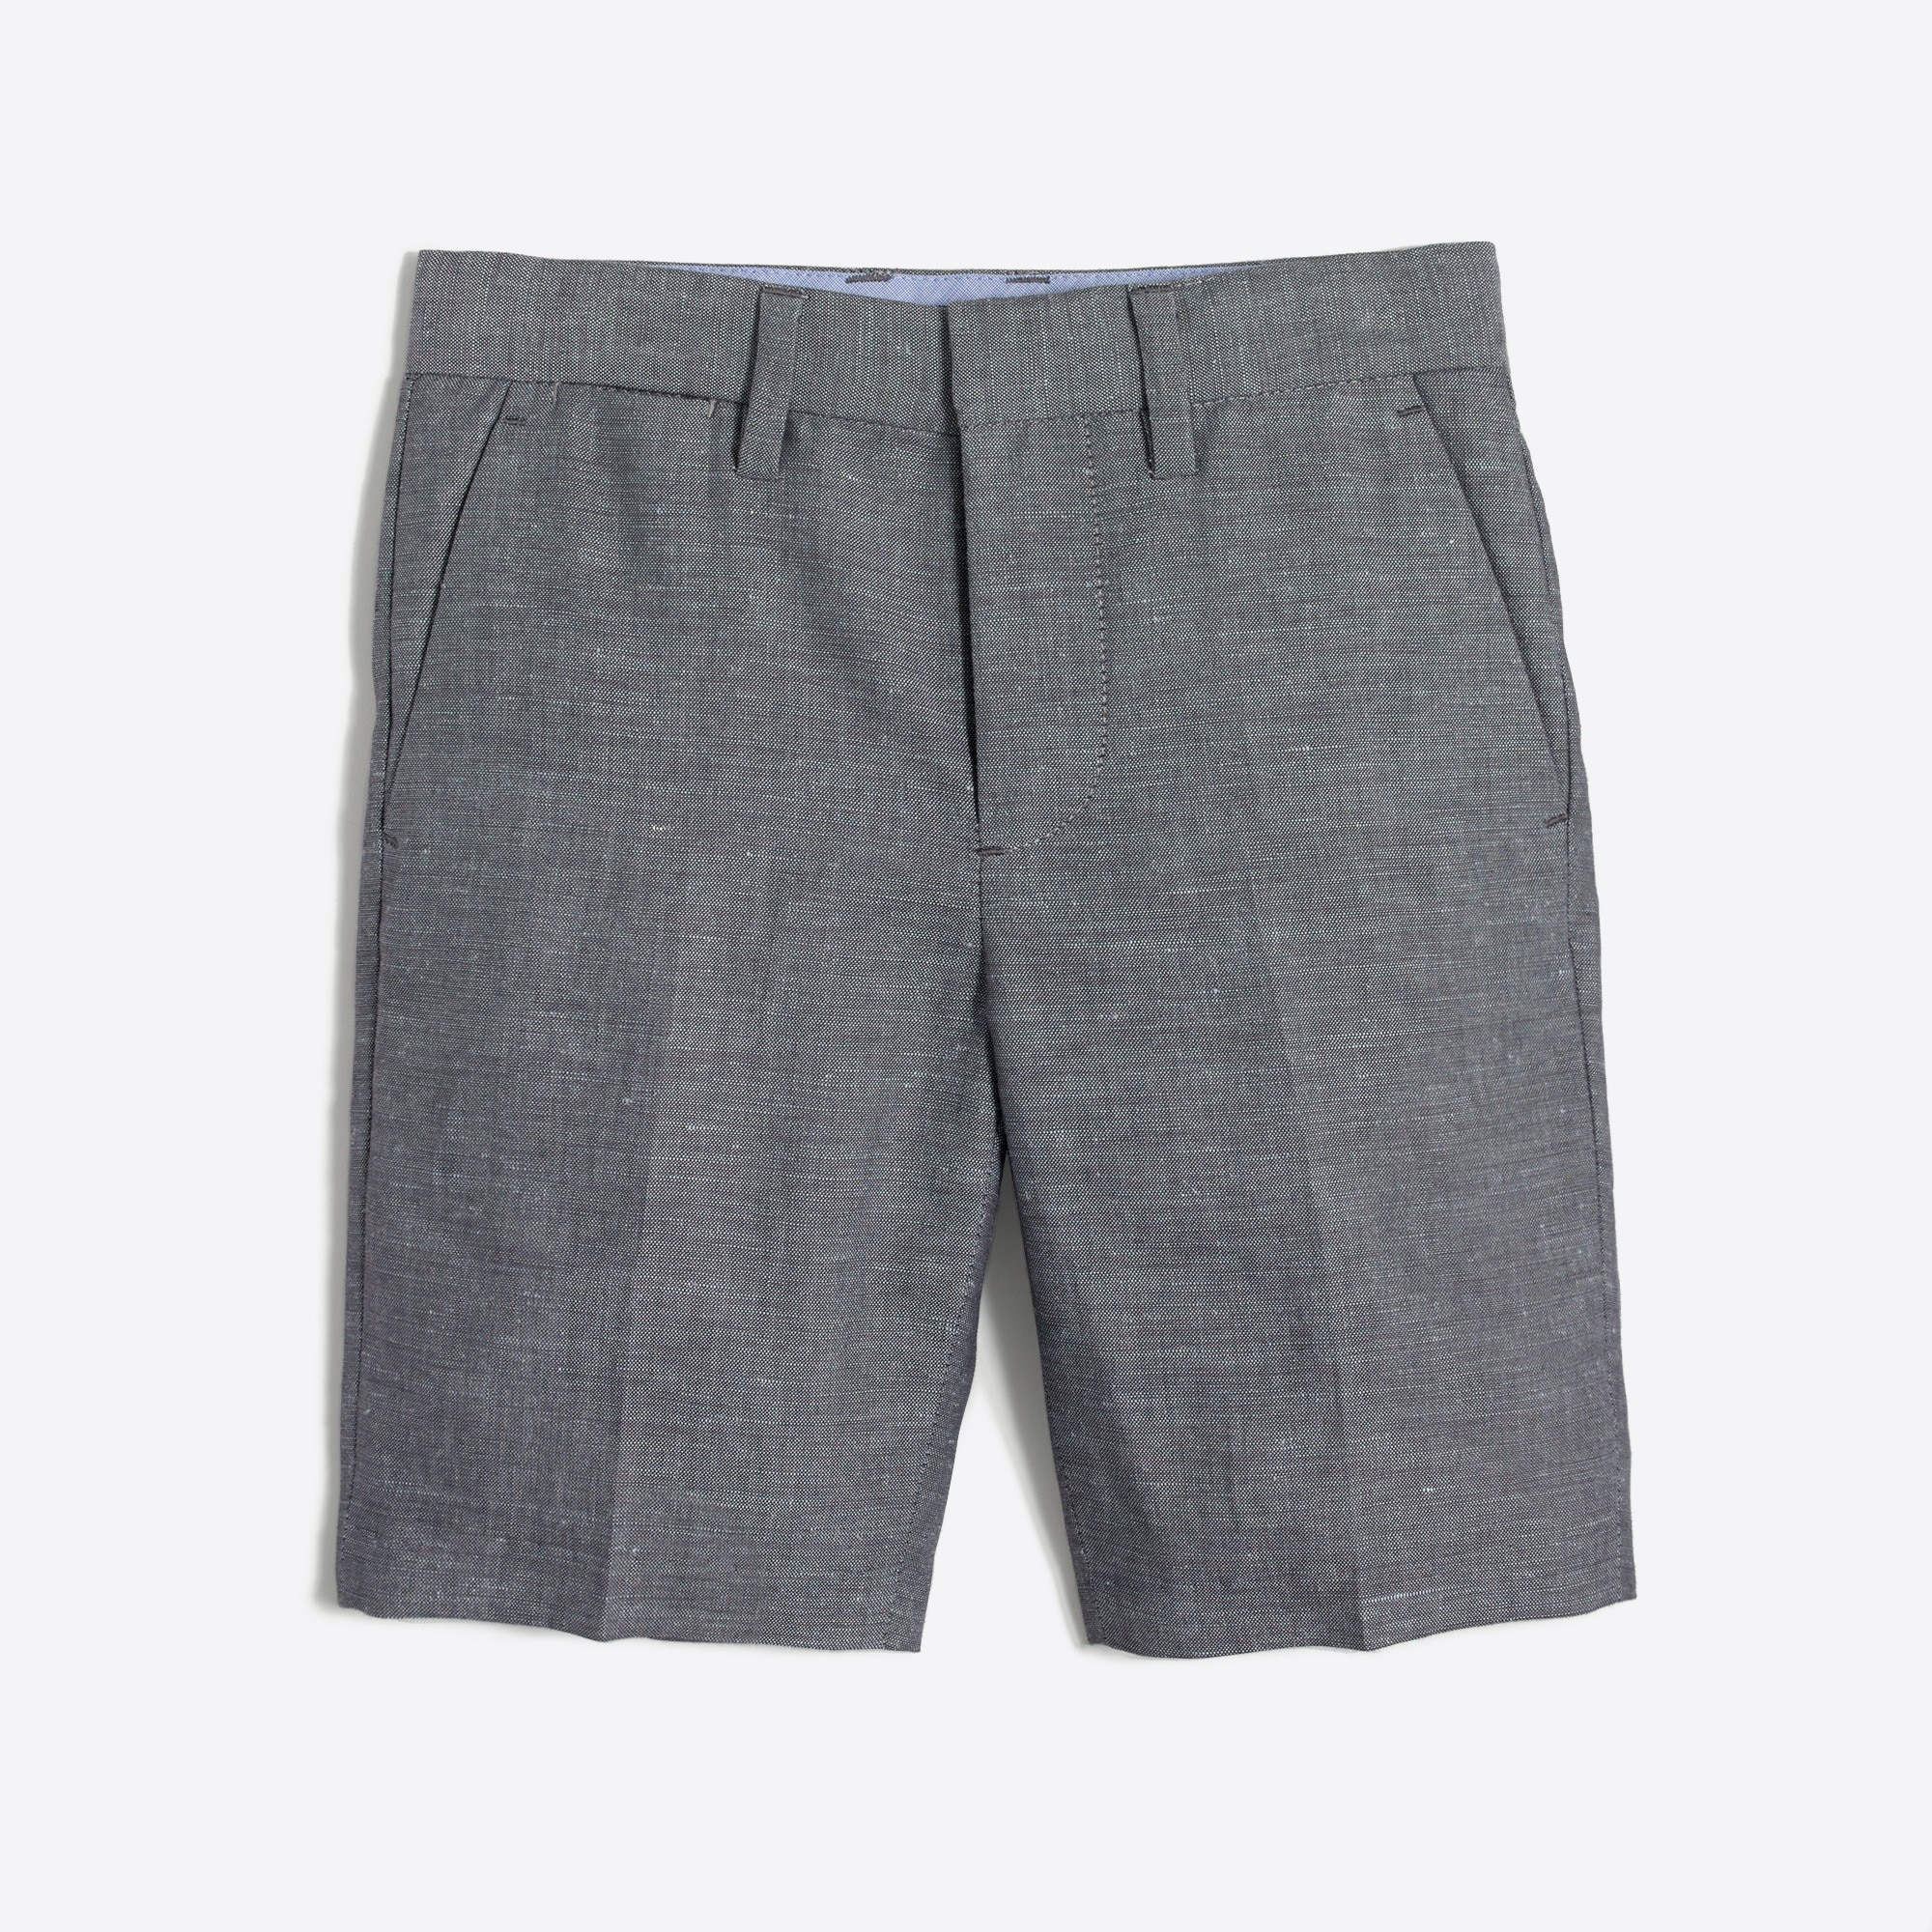 Image 1 for Boys' Thompson suit short in slub linen